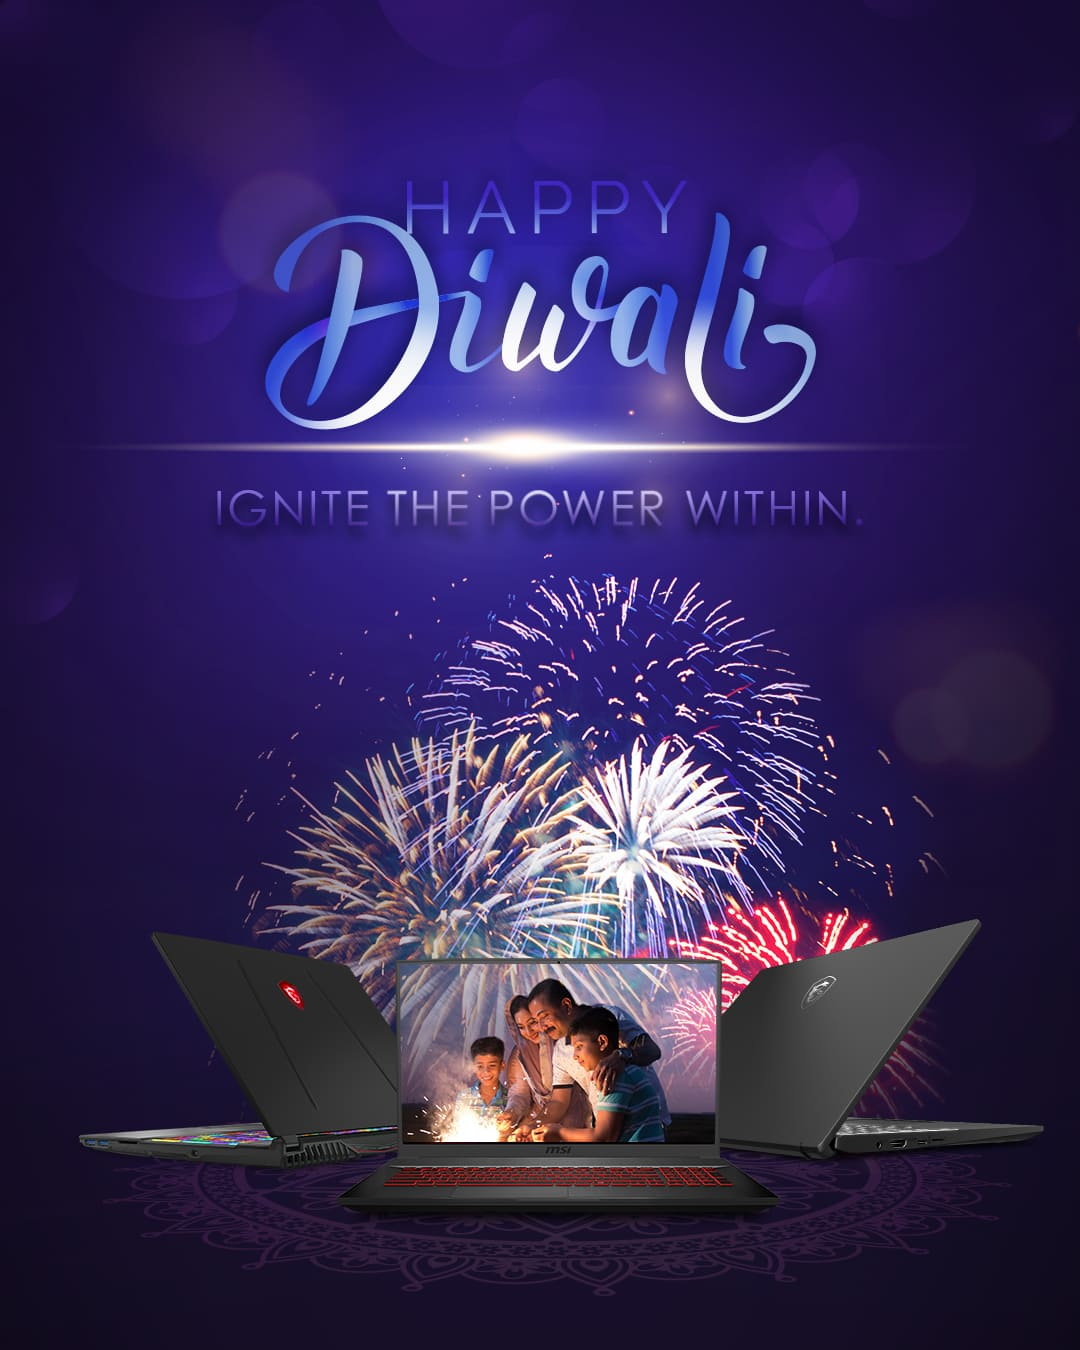 happy Diwali ignite the power within banner